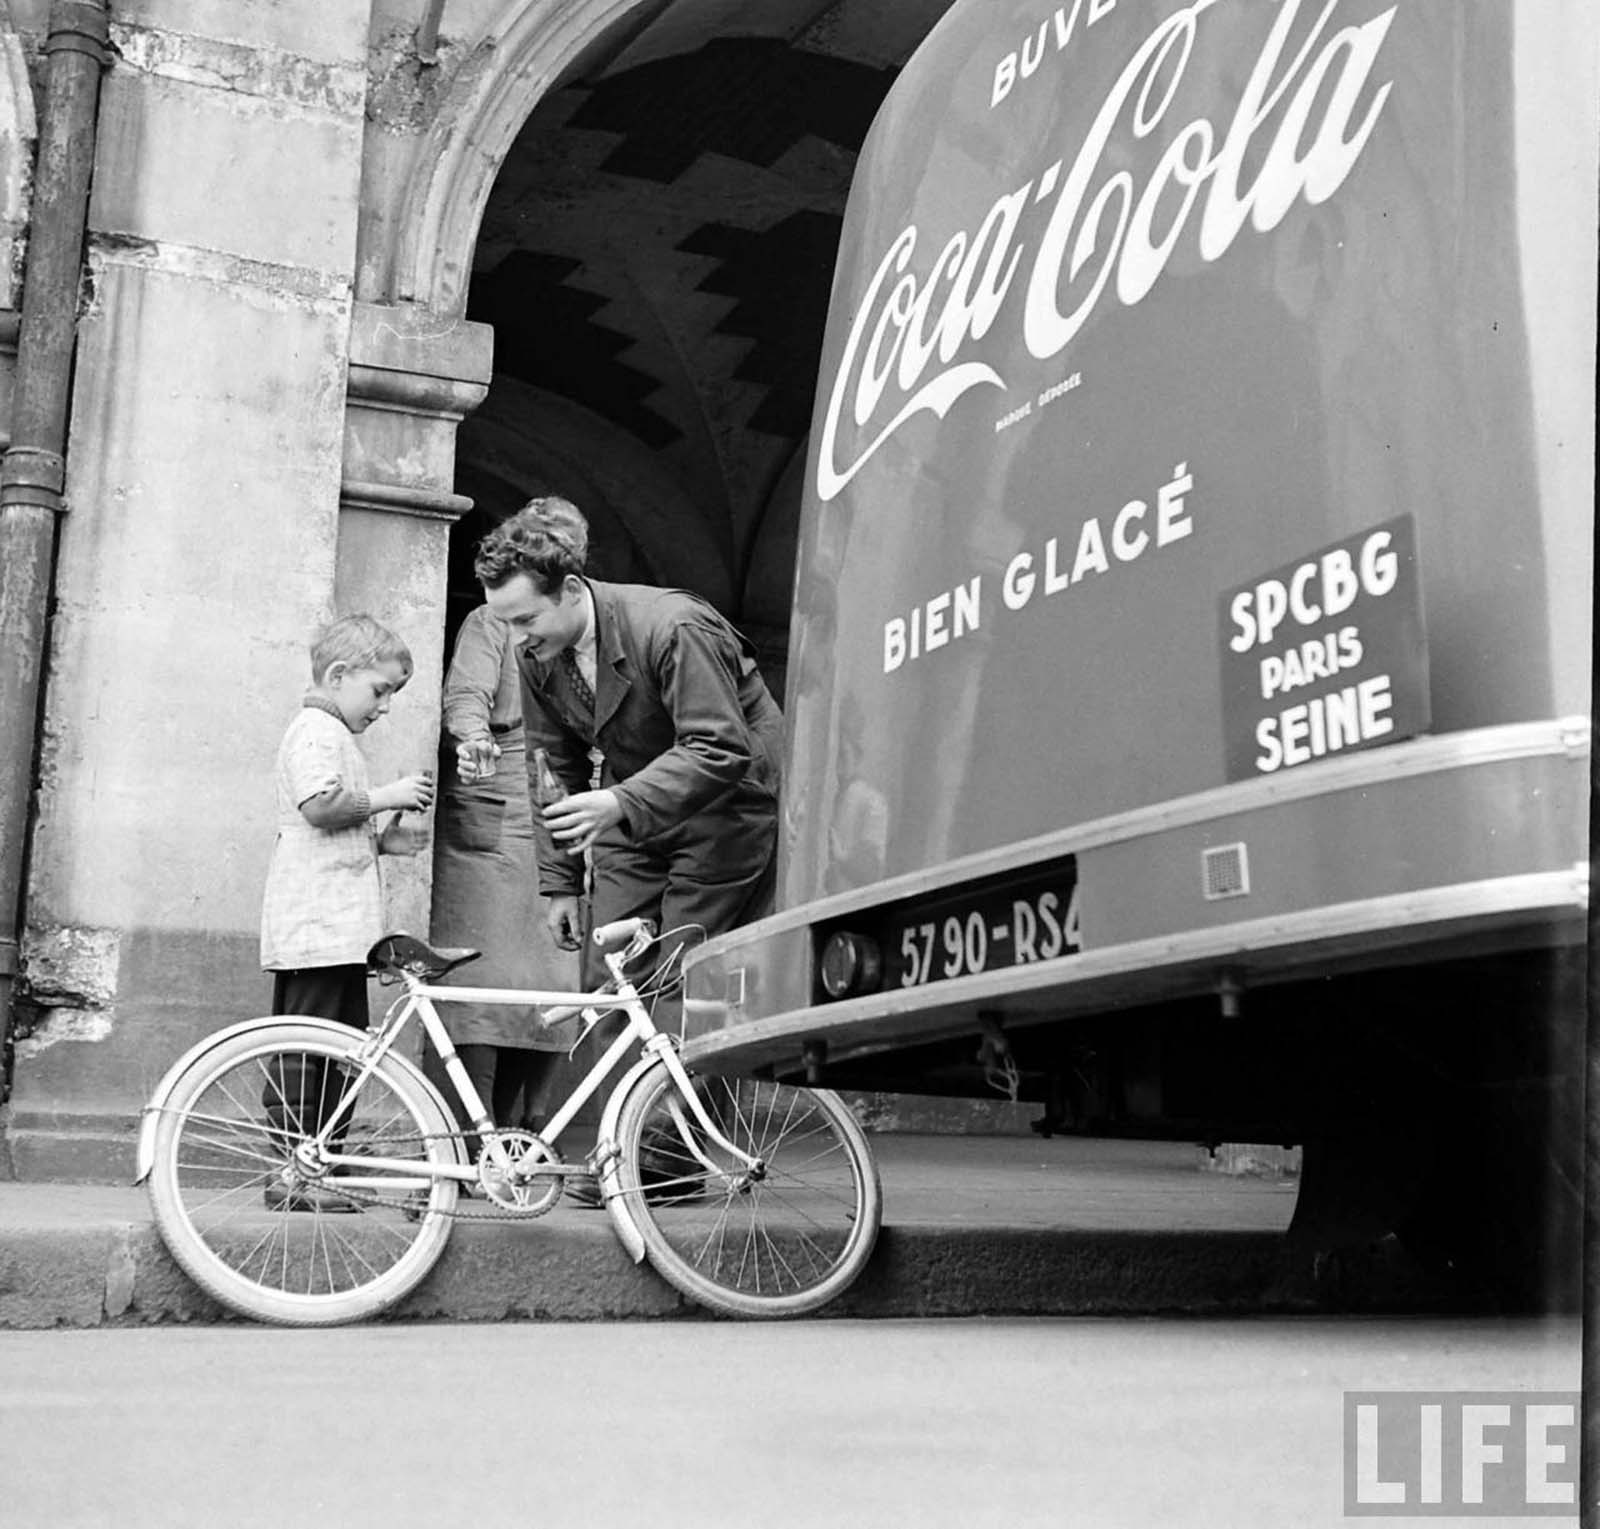 A young boy tasting Coca Cola.